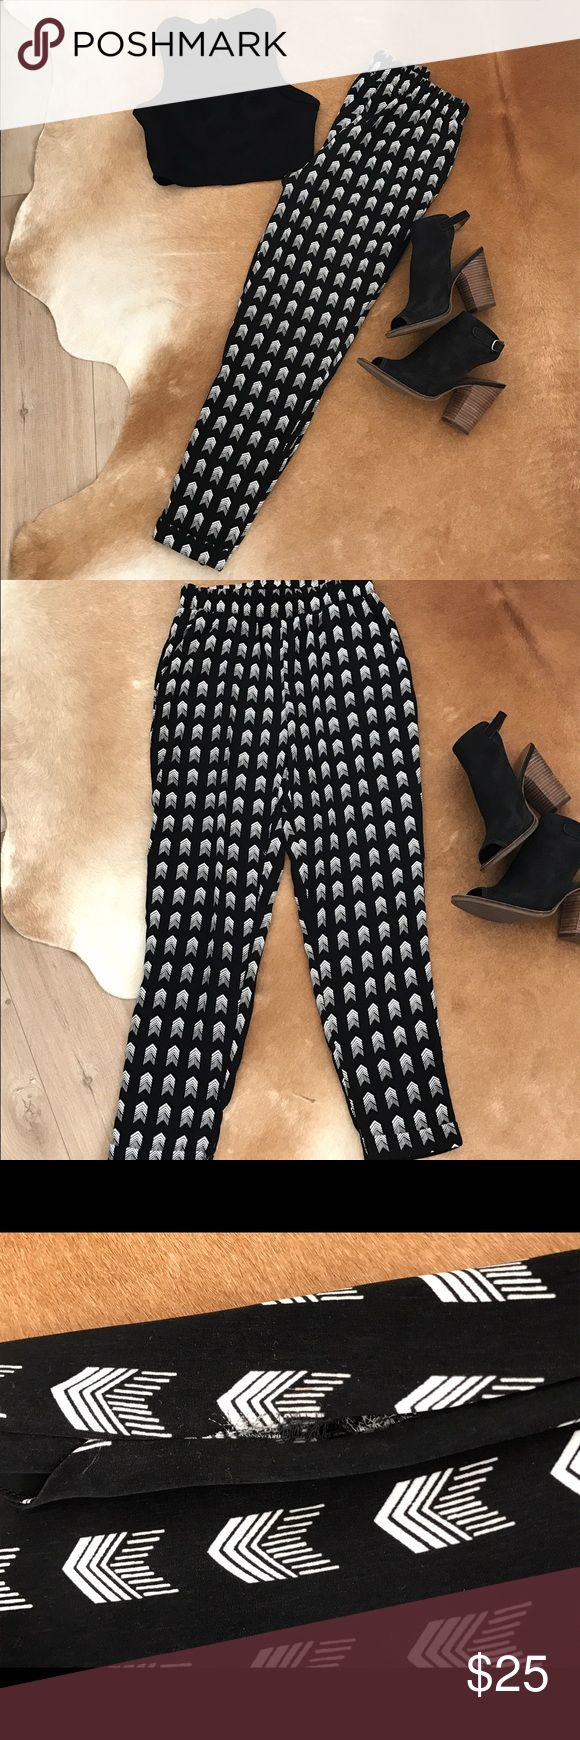 Tribal print pants Bold tribal print pants! Perfect statement piece for your wardrobe. Please note there is a small tear on the seam of the pant. Forever 21 Pants Straight Leg